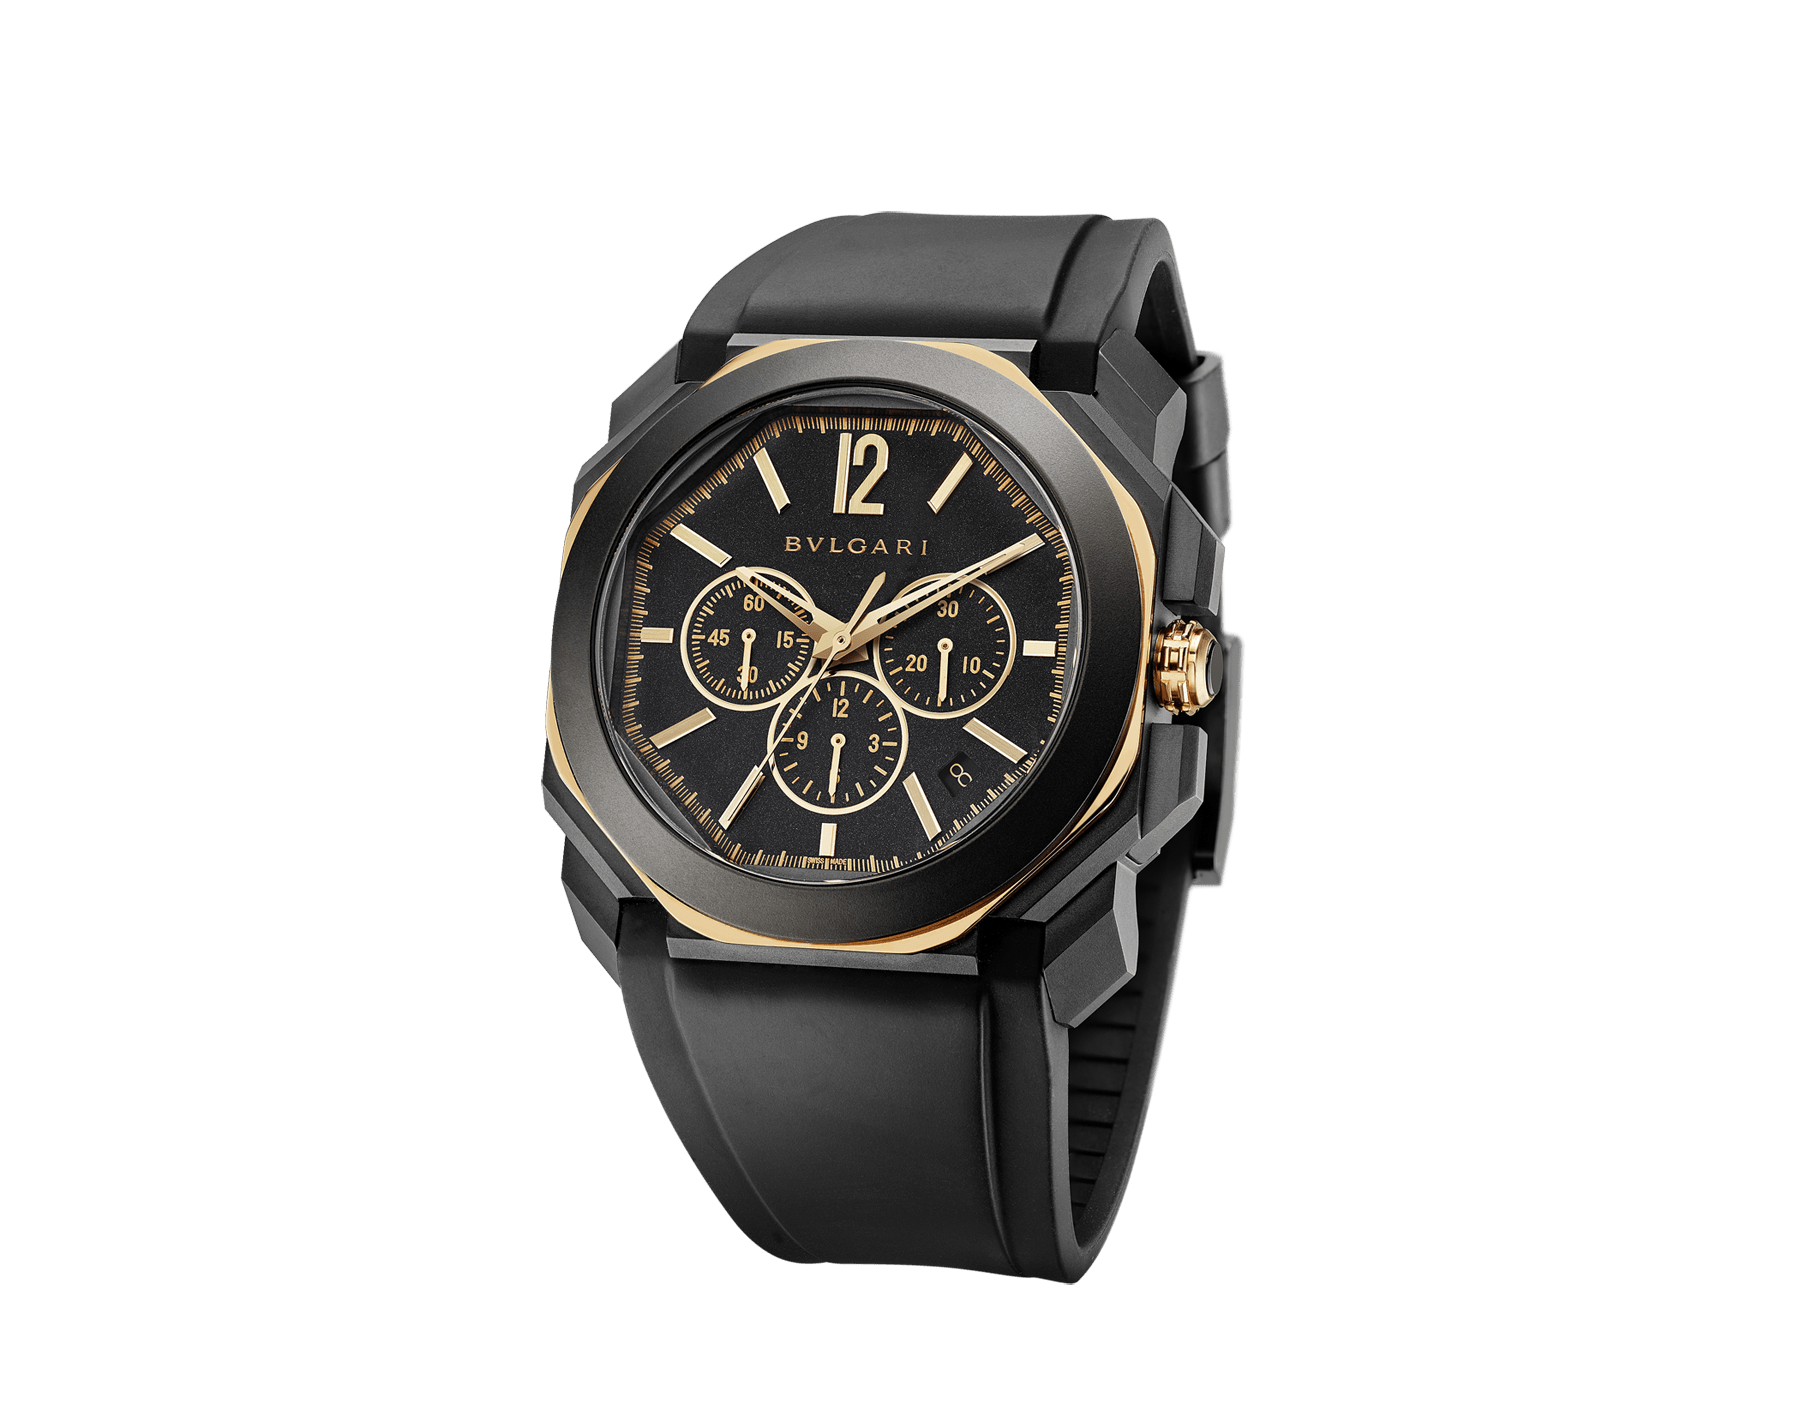 Octo L'Originale watch with mechanical manufacture high-frequency chronograph, silicon escapement, automatic winding and date, sandblasted stainless steel case treated with Diamond Like Carbon, 18 kt rose gold octagon, transparent case back, anthracite dial and black rubber bracelet 103075 image 2